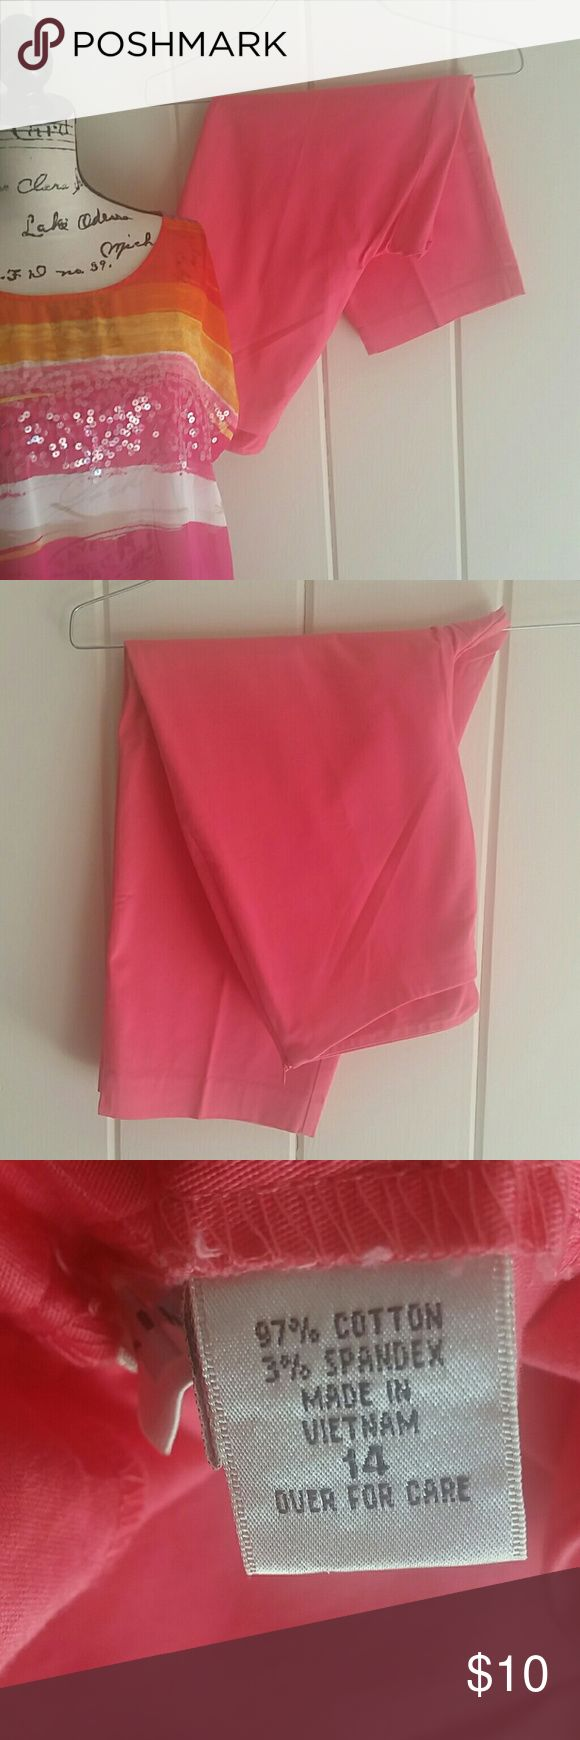 Pretty Coral Capri Pants Gorgeous pair of capri pants in a soft coral color in like new condition. Side zip for ease of wear. You're going to love these! Kim Rogers Pants Capris